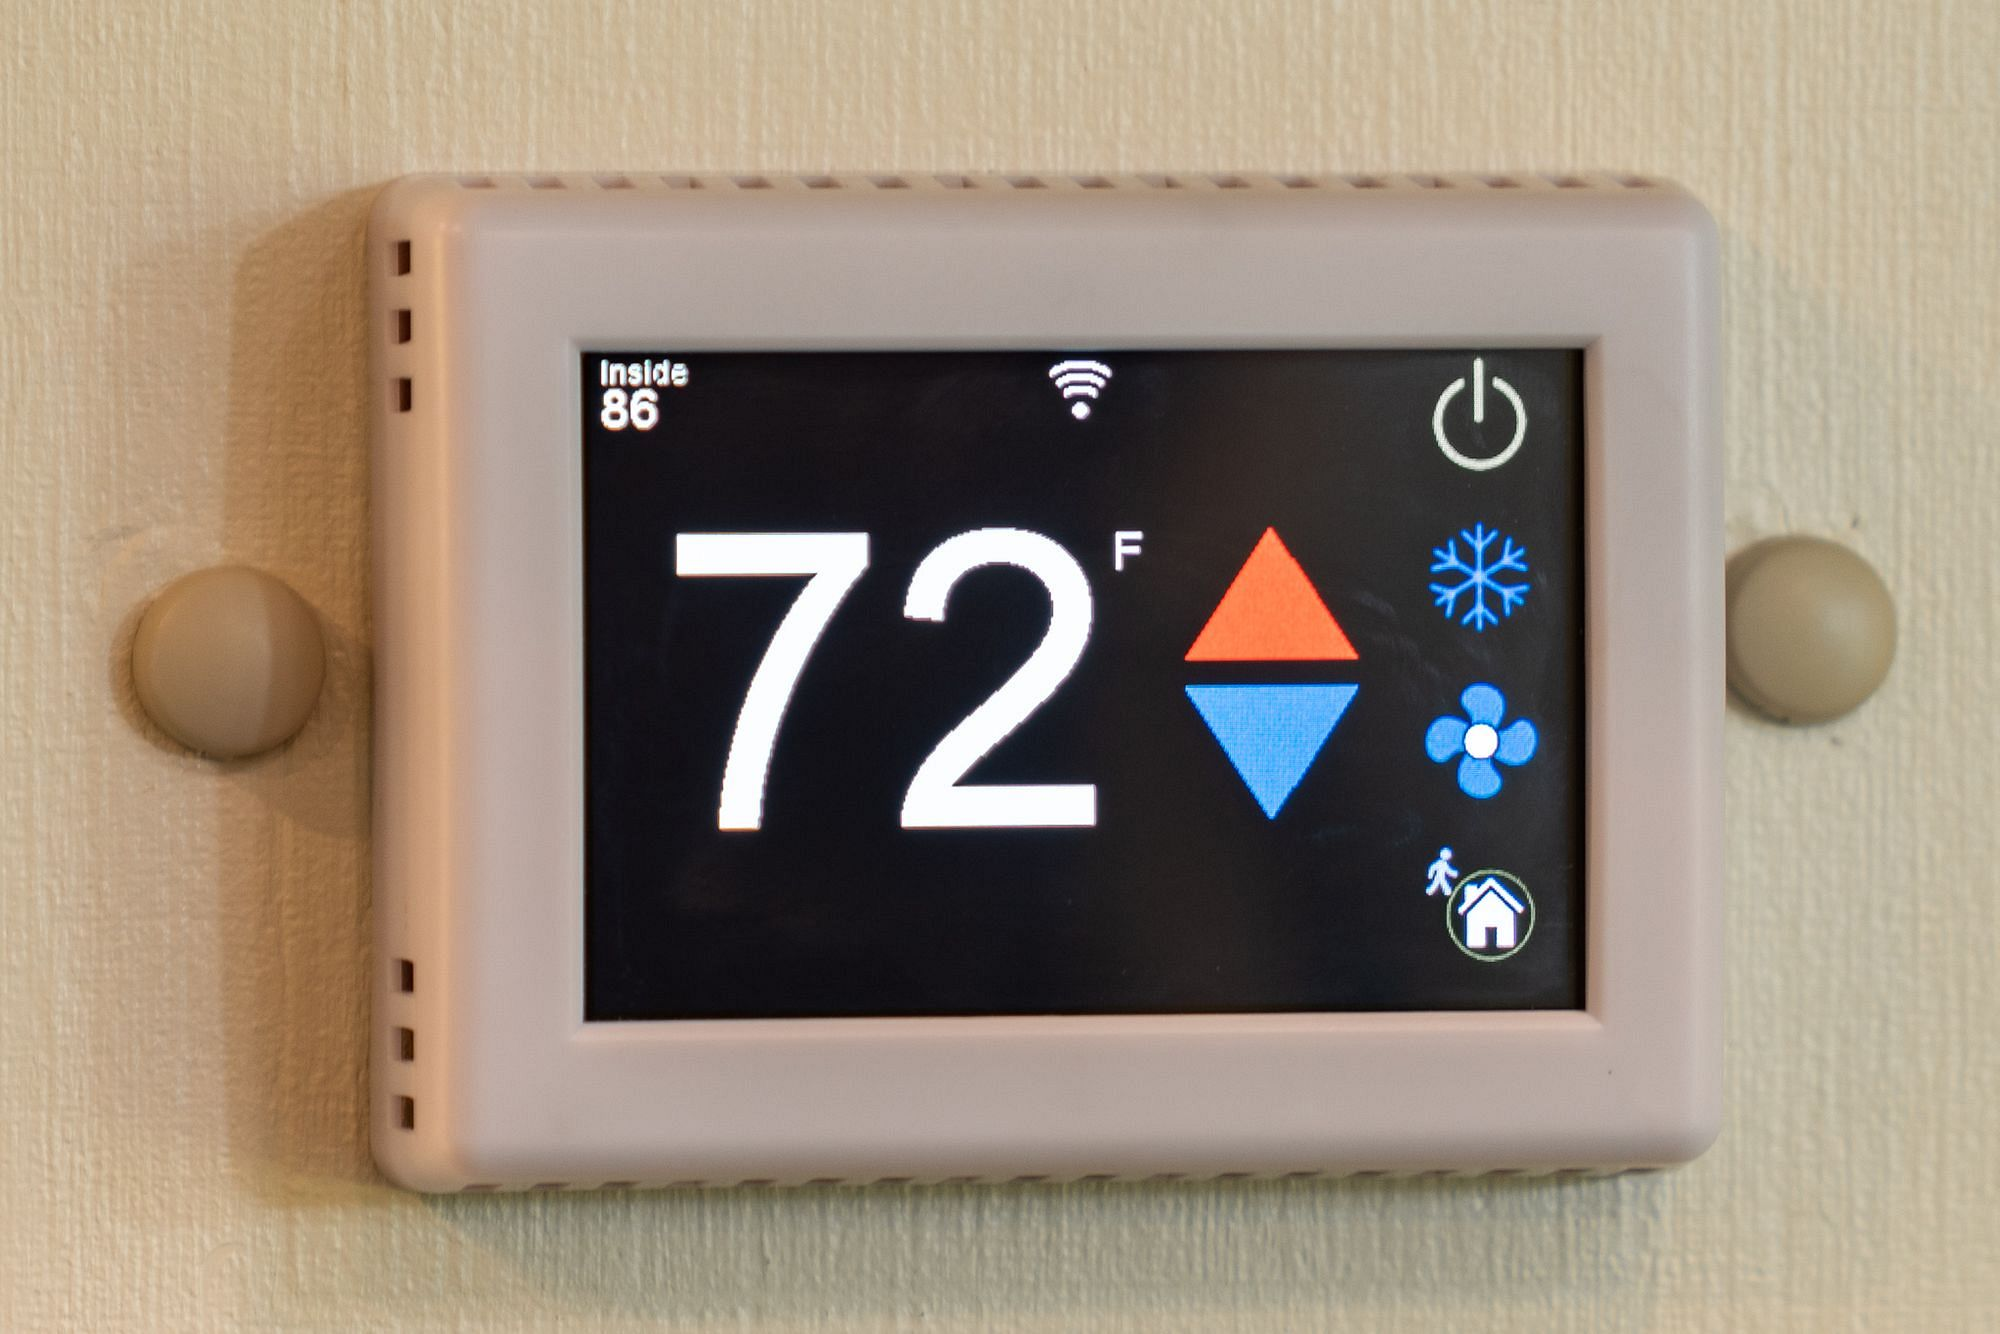 EasyTouch Temperature Display